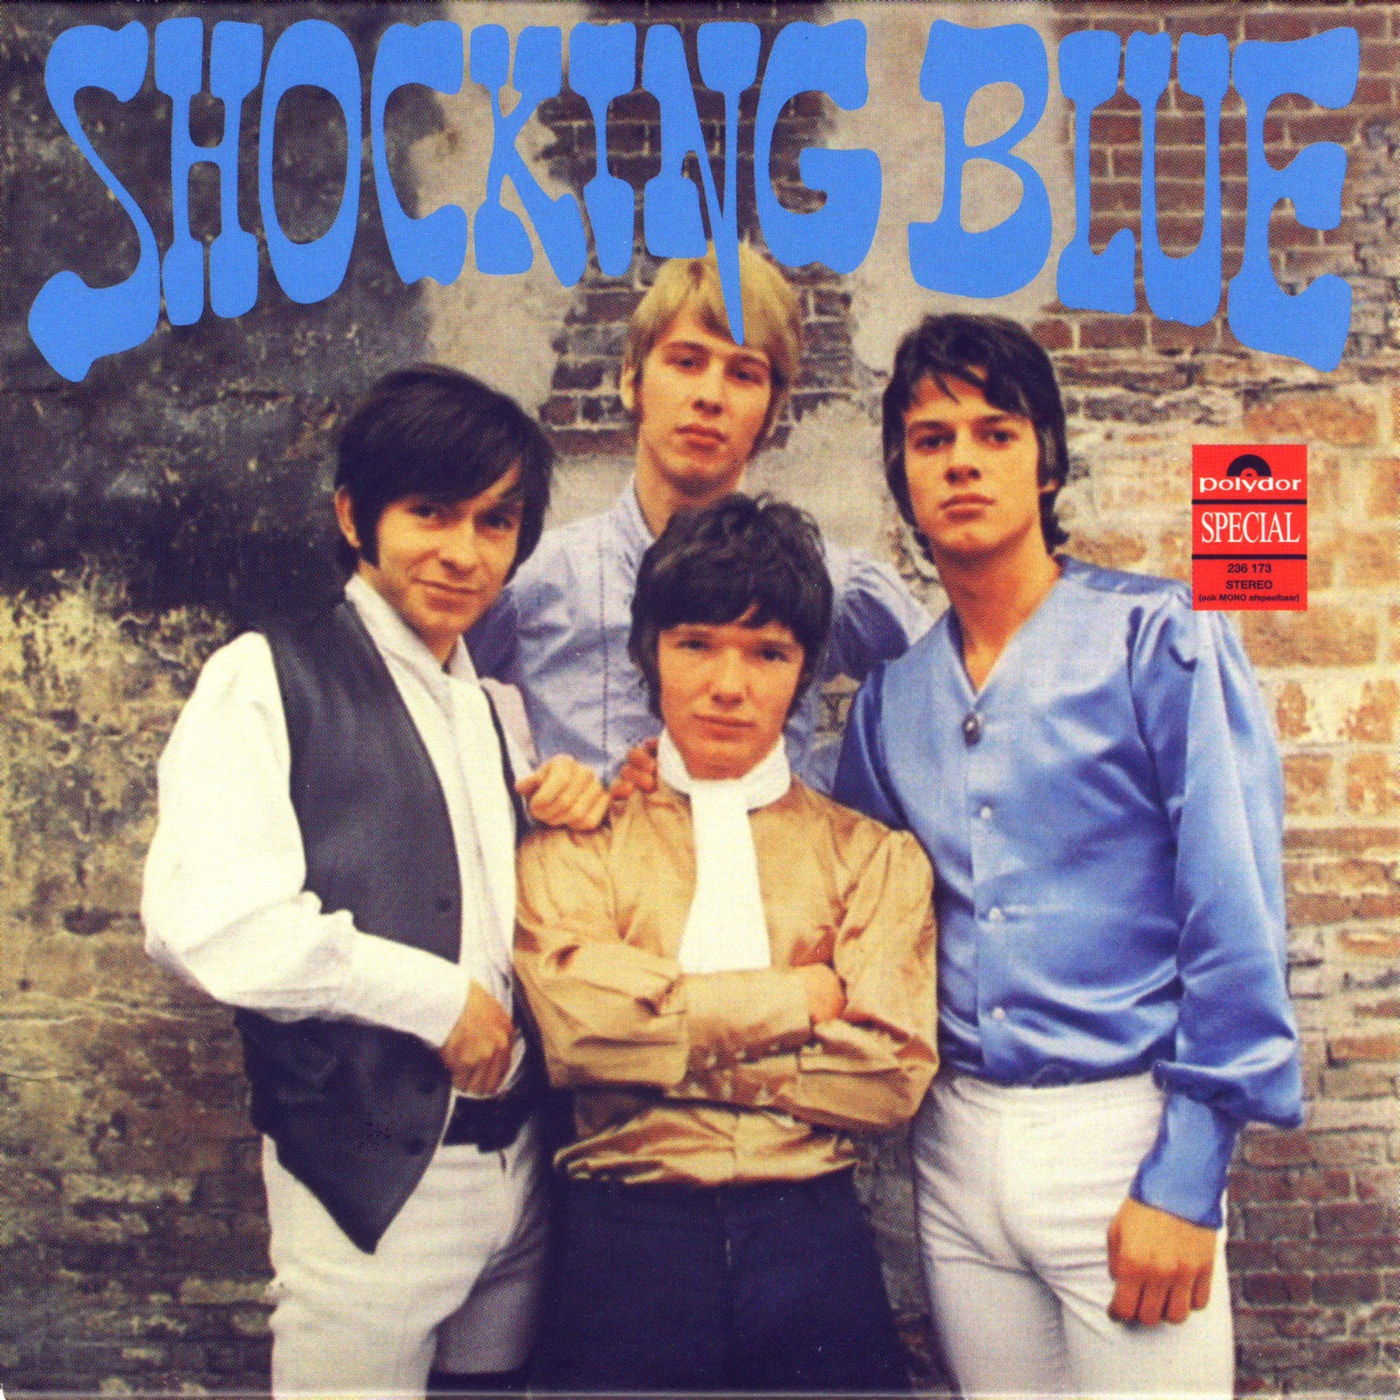 Shocking Blue - Special (Beat With Us) (1968)